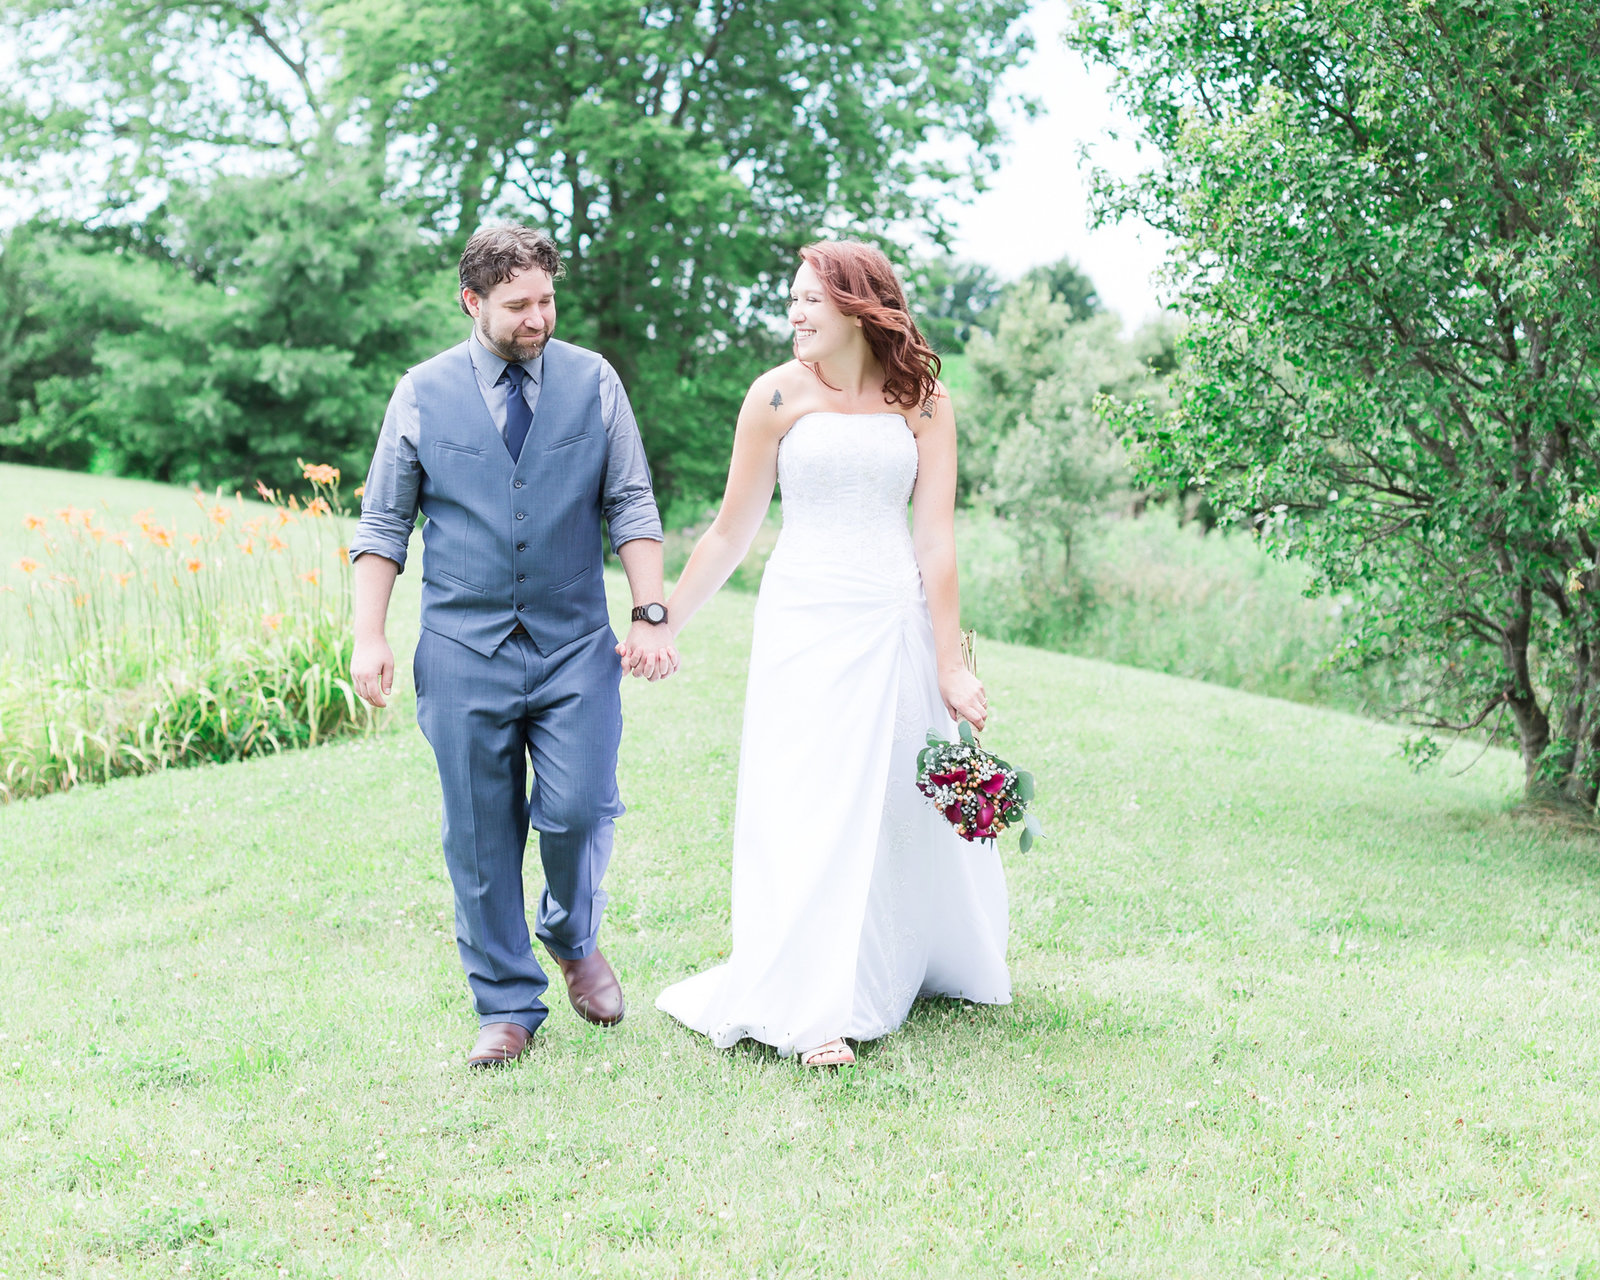 Simply Seeking Photography | Fort Wayne wedding photographer| Bride and groom in beautiful backyard wedding